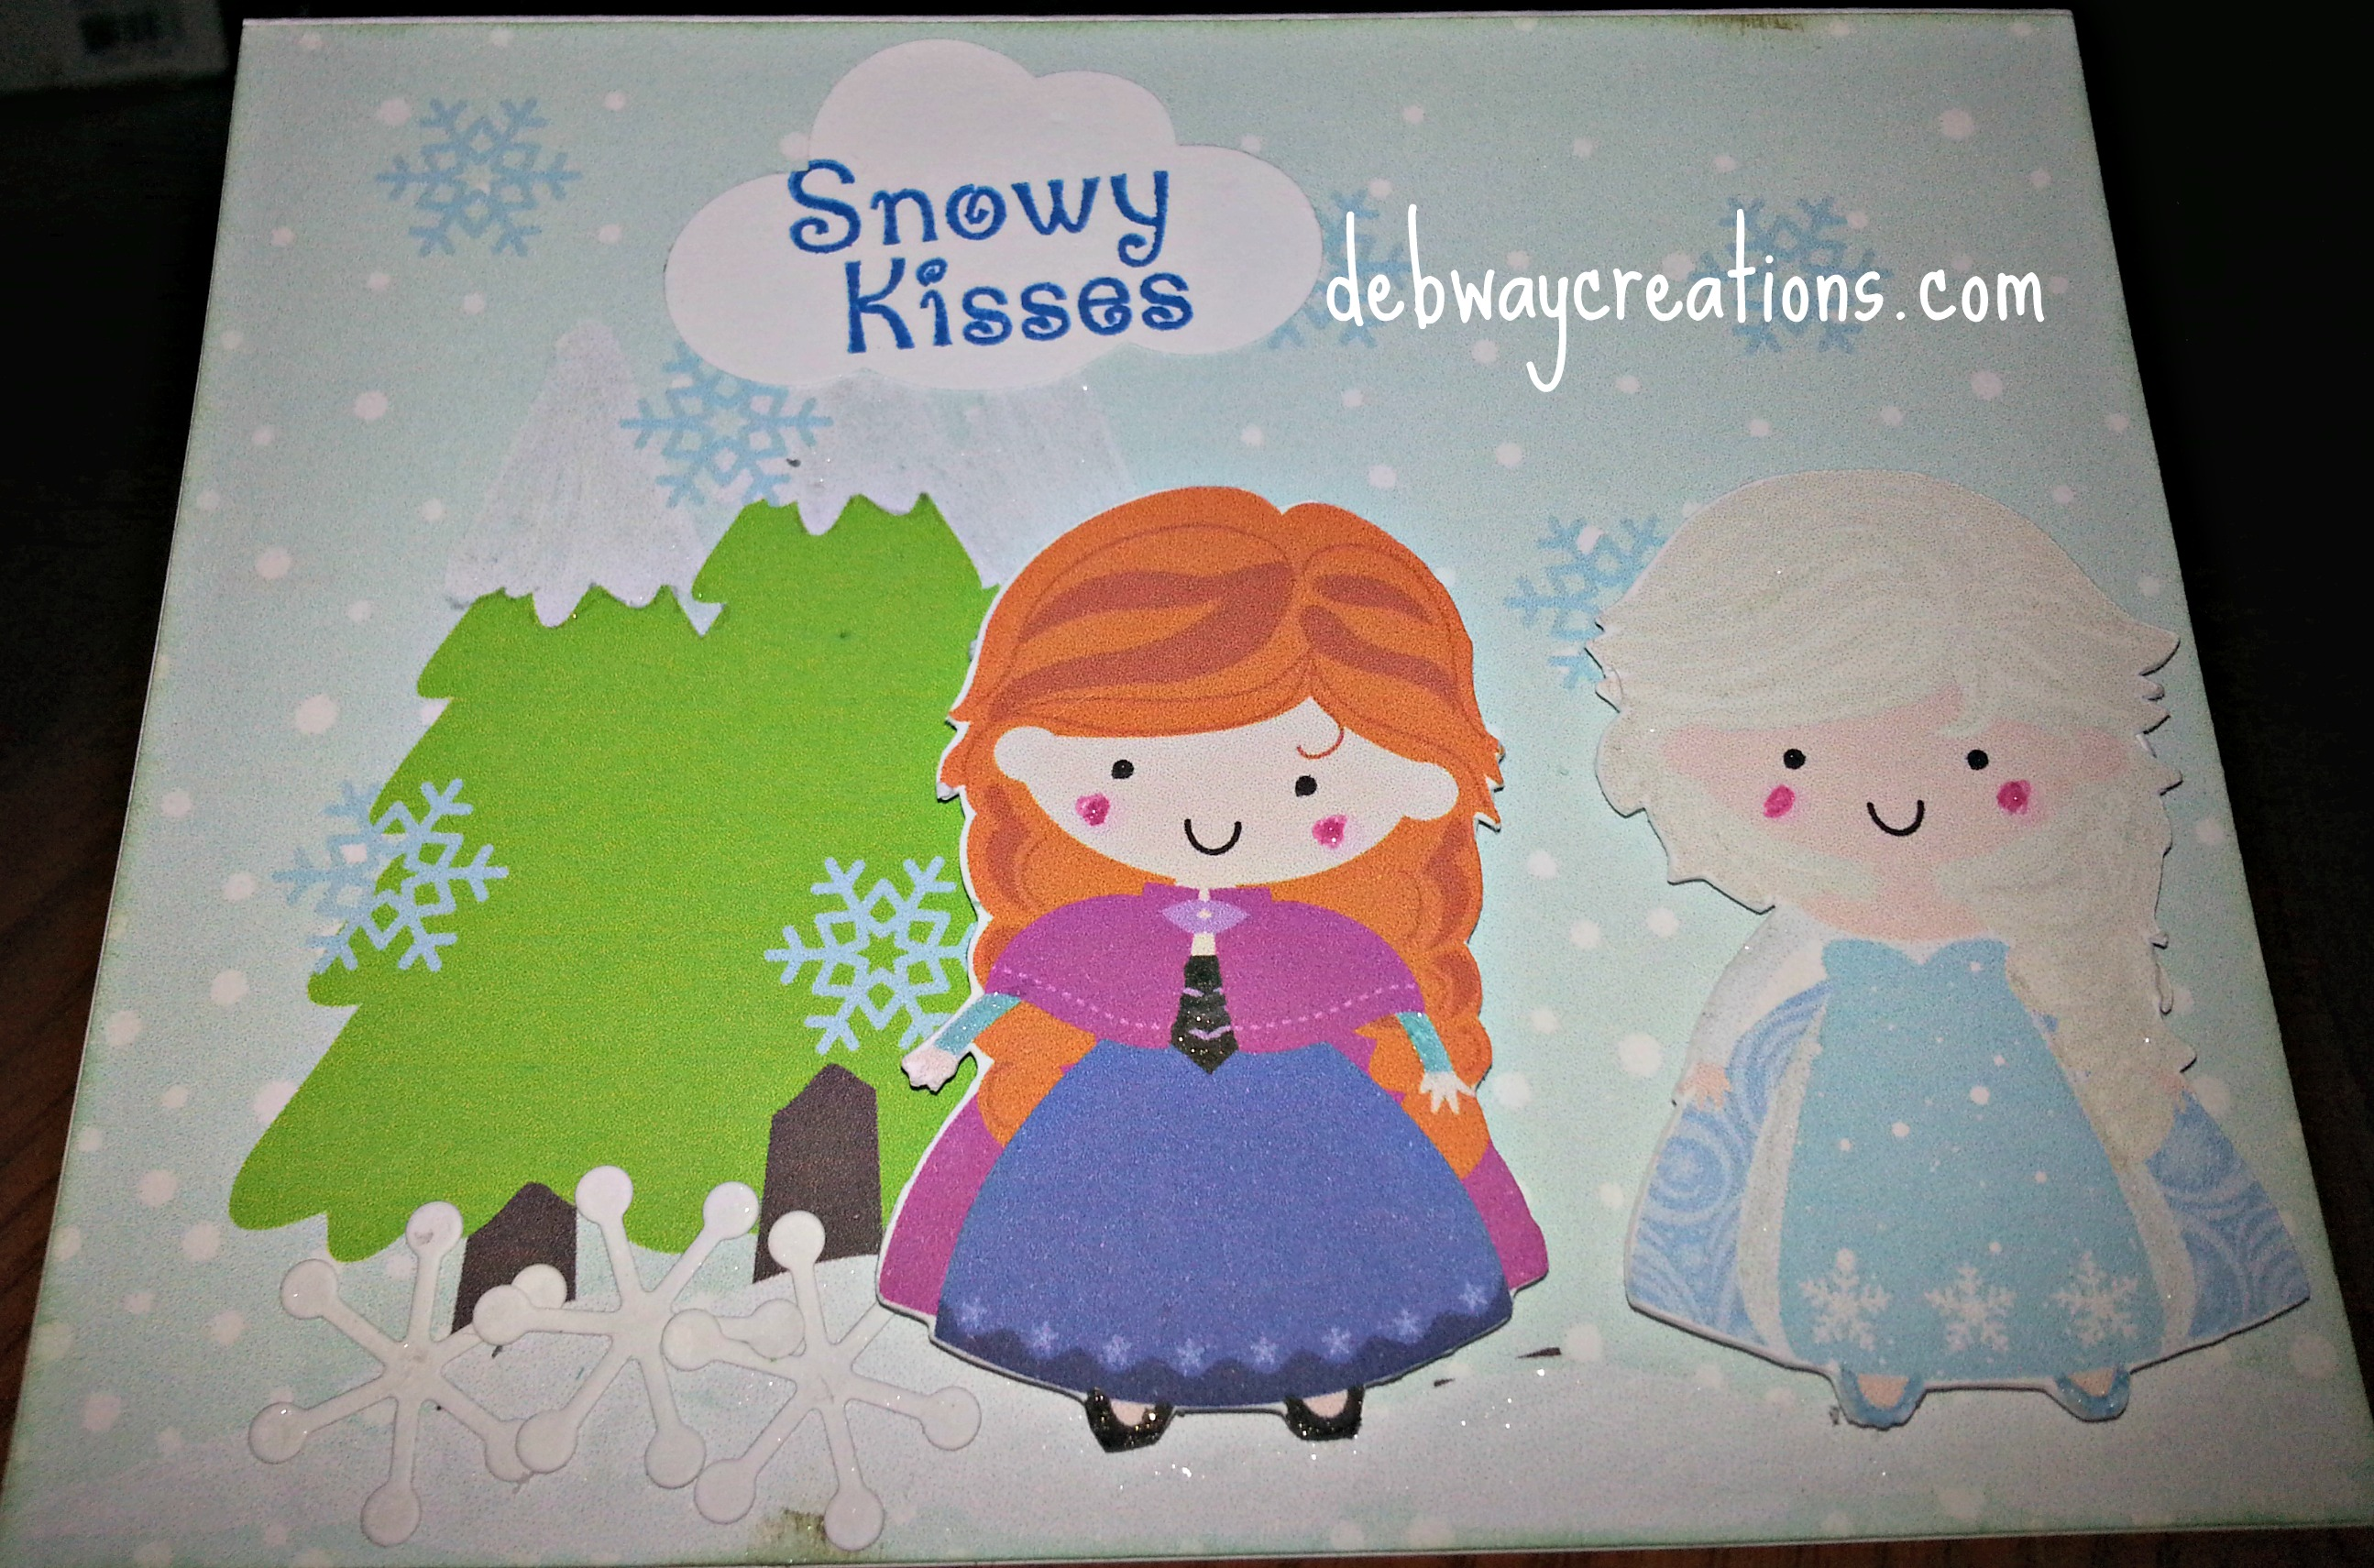 Pop Up Birthday Cards Using Silhouette Print and Cut – debwaycreations